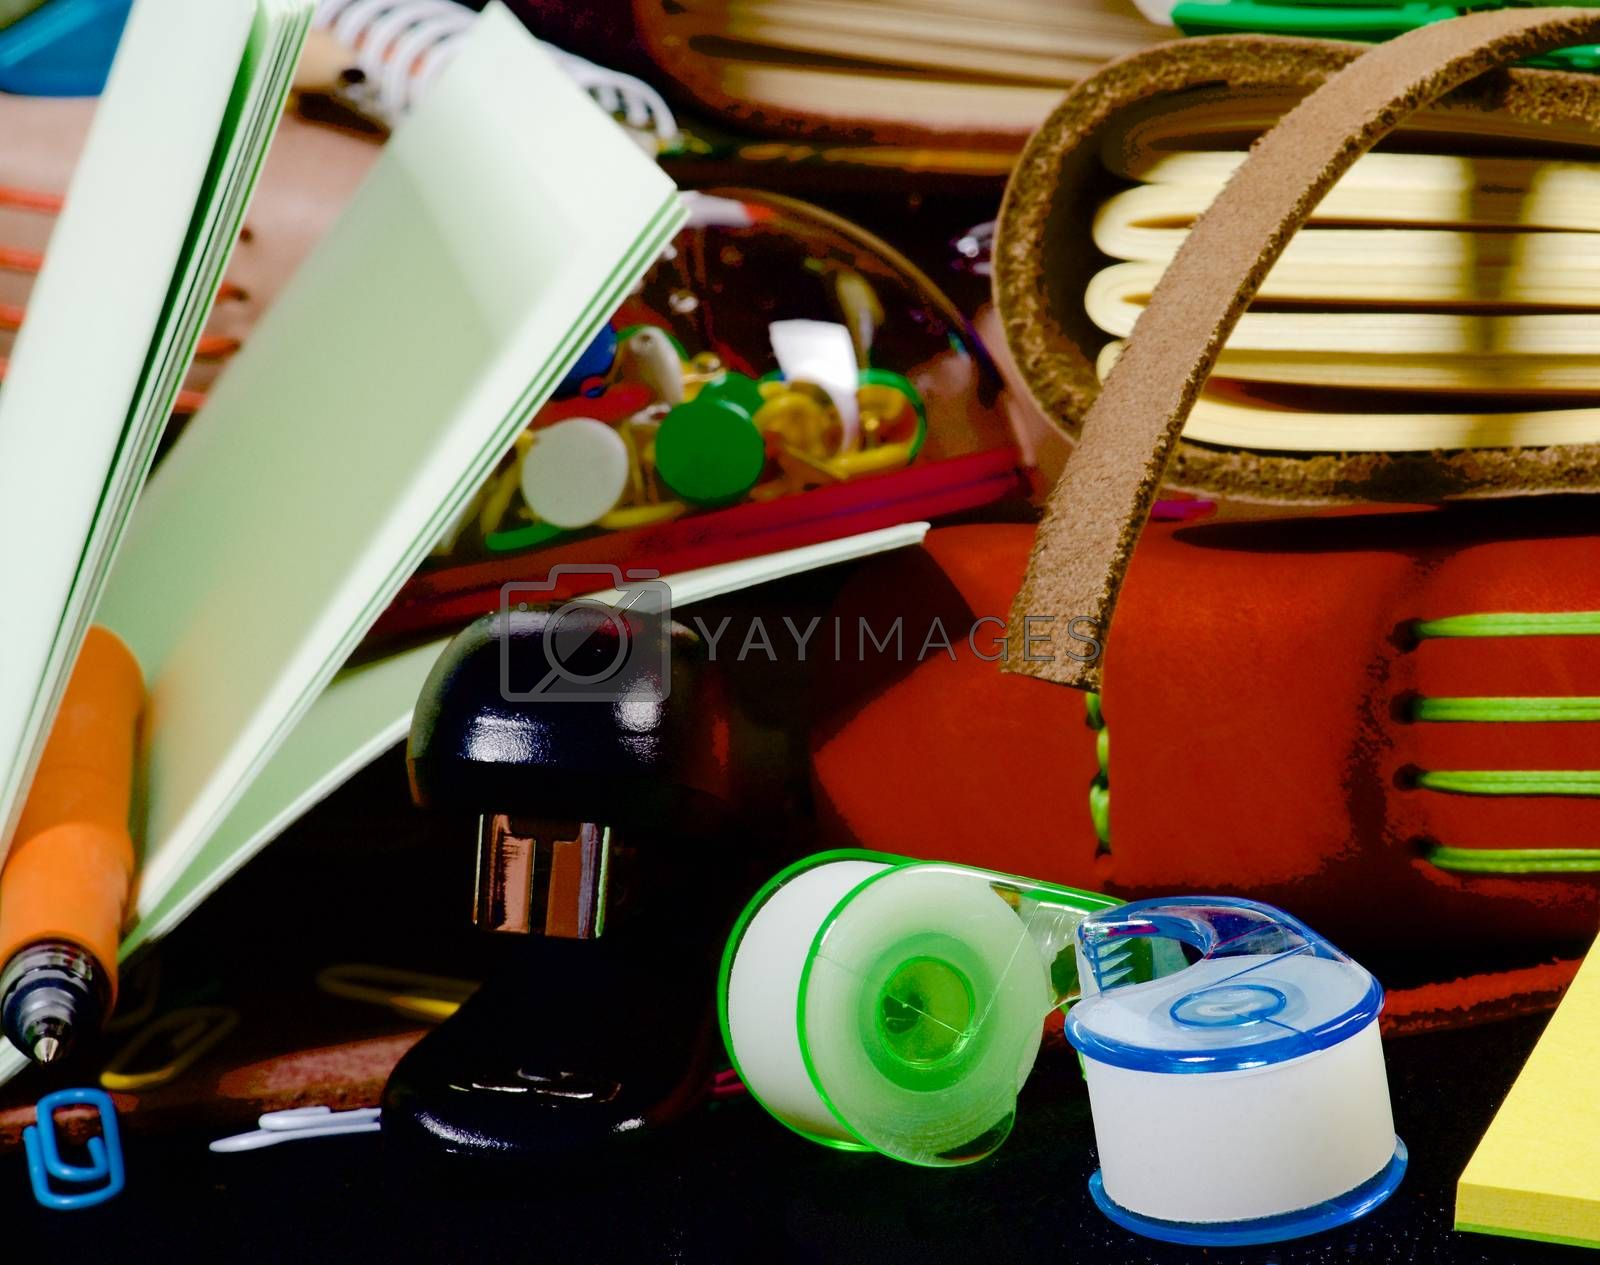 Background of Stationery Items with Notepads, Pens, Pencils, Paper Clips, Tape Dispenser, Marker and Stapler closeup